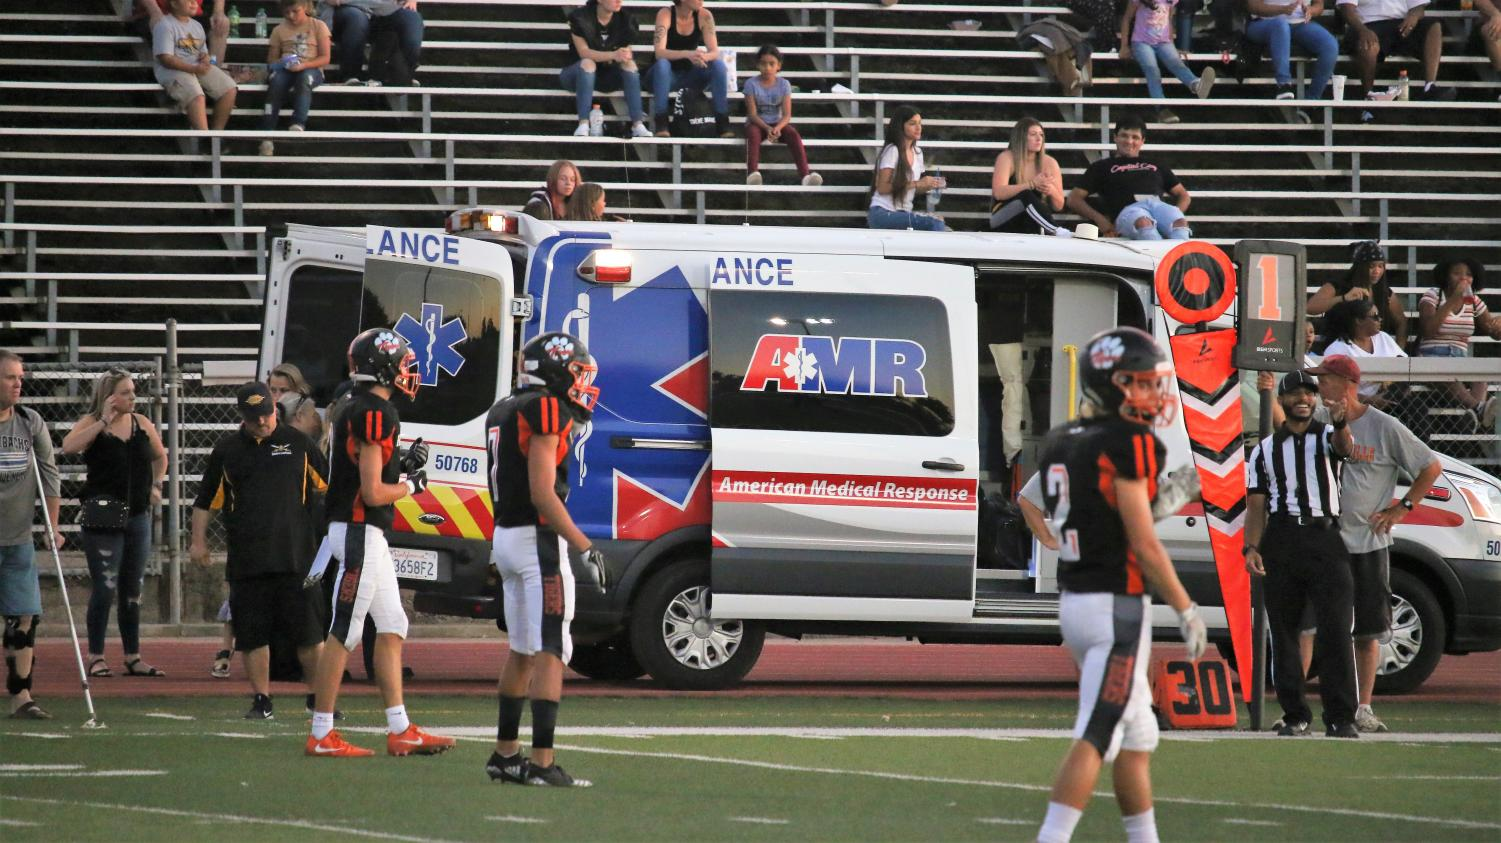 #24 Tyler Rhower is led away by EMTs after an apparent knee injury. He suffered a torn ligament in his ankle.